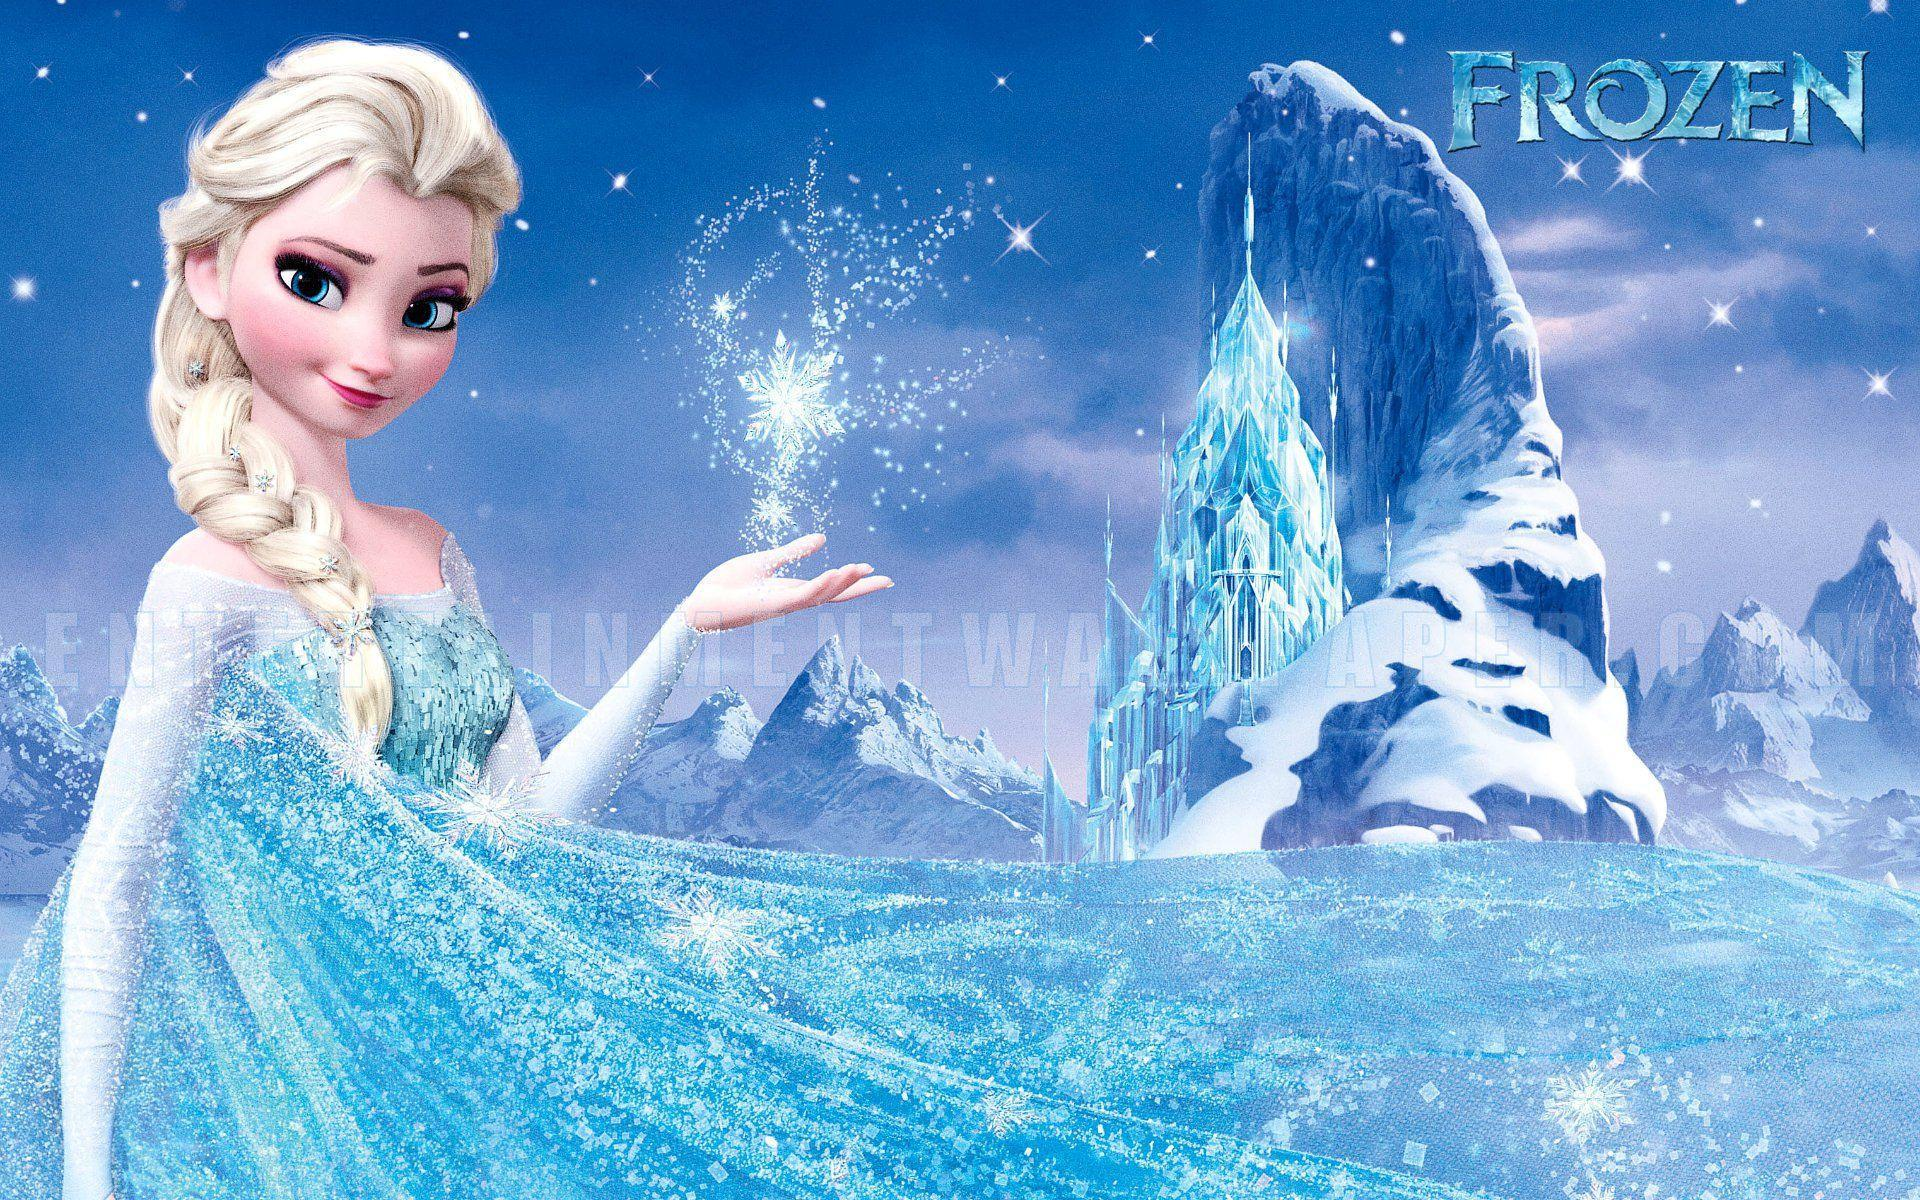 The Most Amazing Best Frozen Wallpapers on The Web